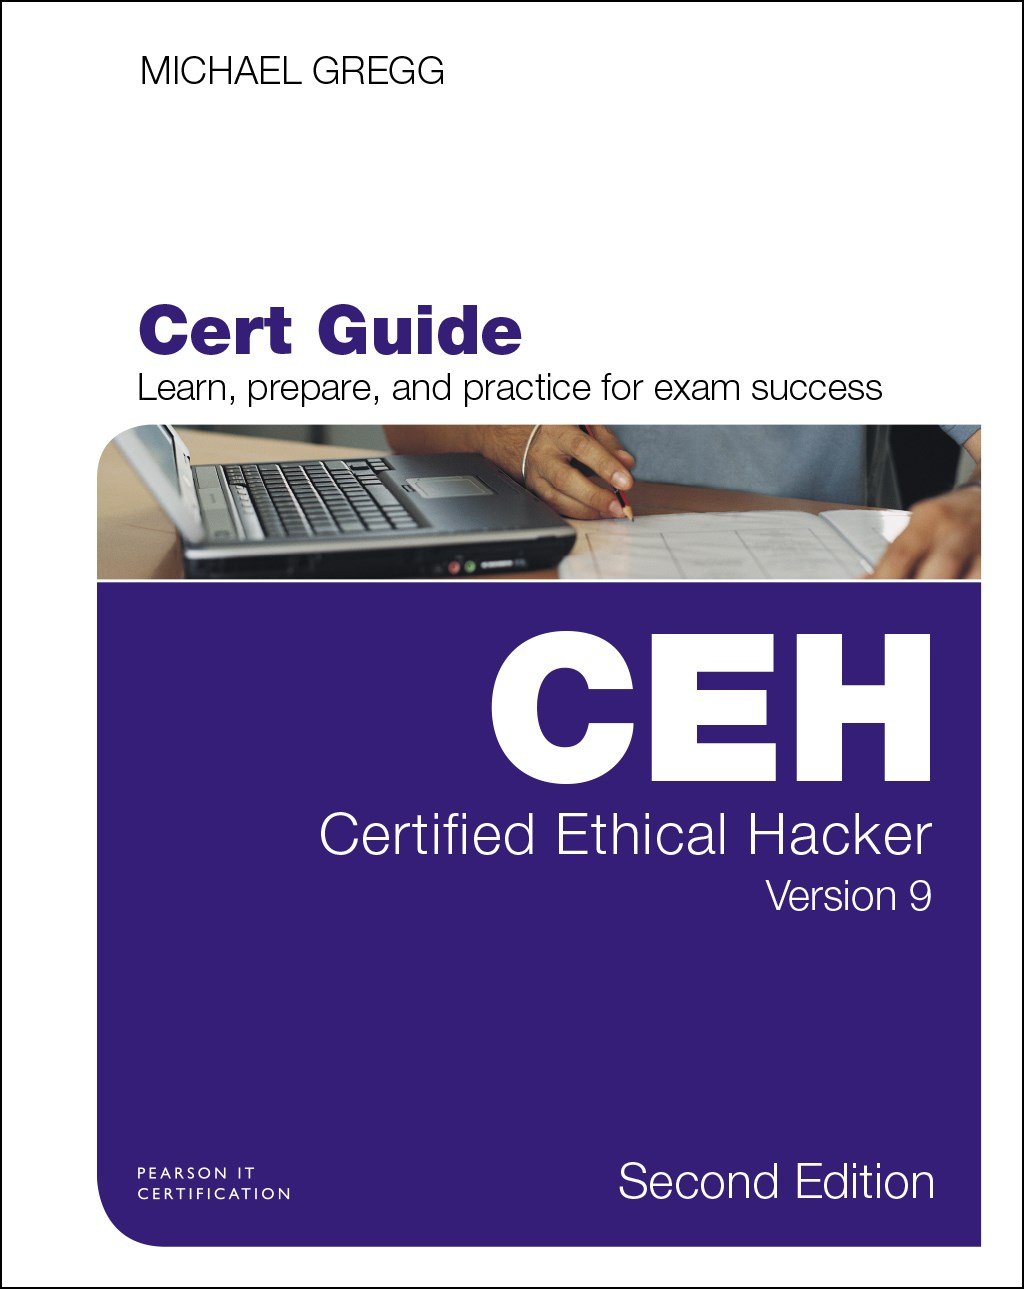 Certified Ethical Hacker (CEH) Version 9 Cert Guide, 2nd Edition